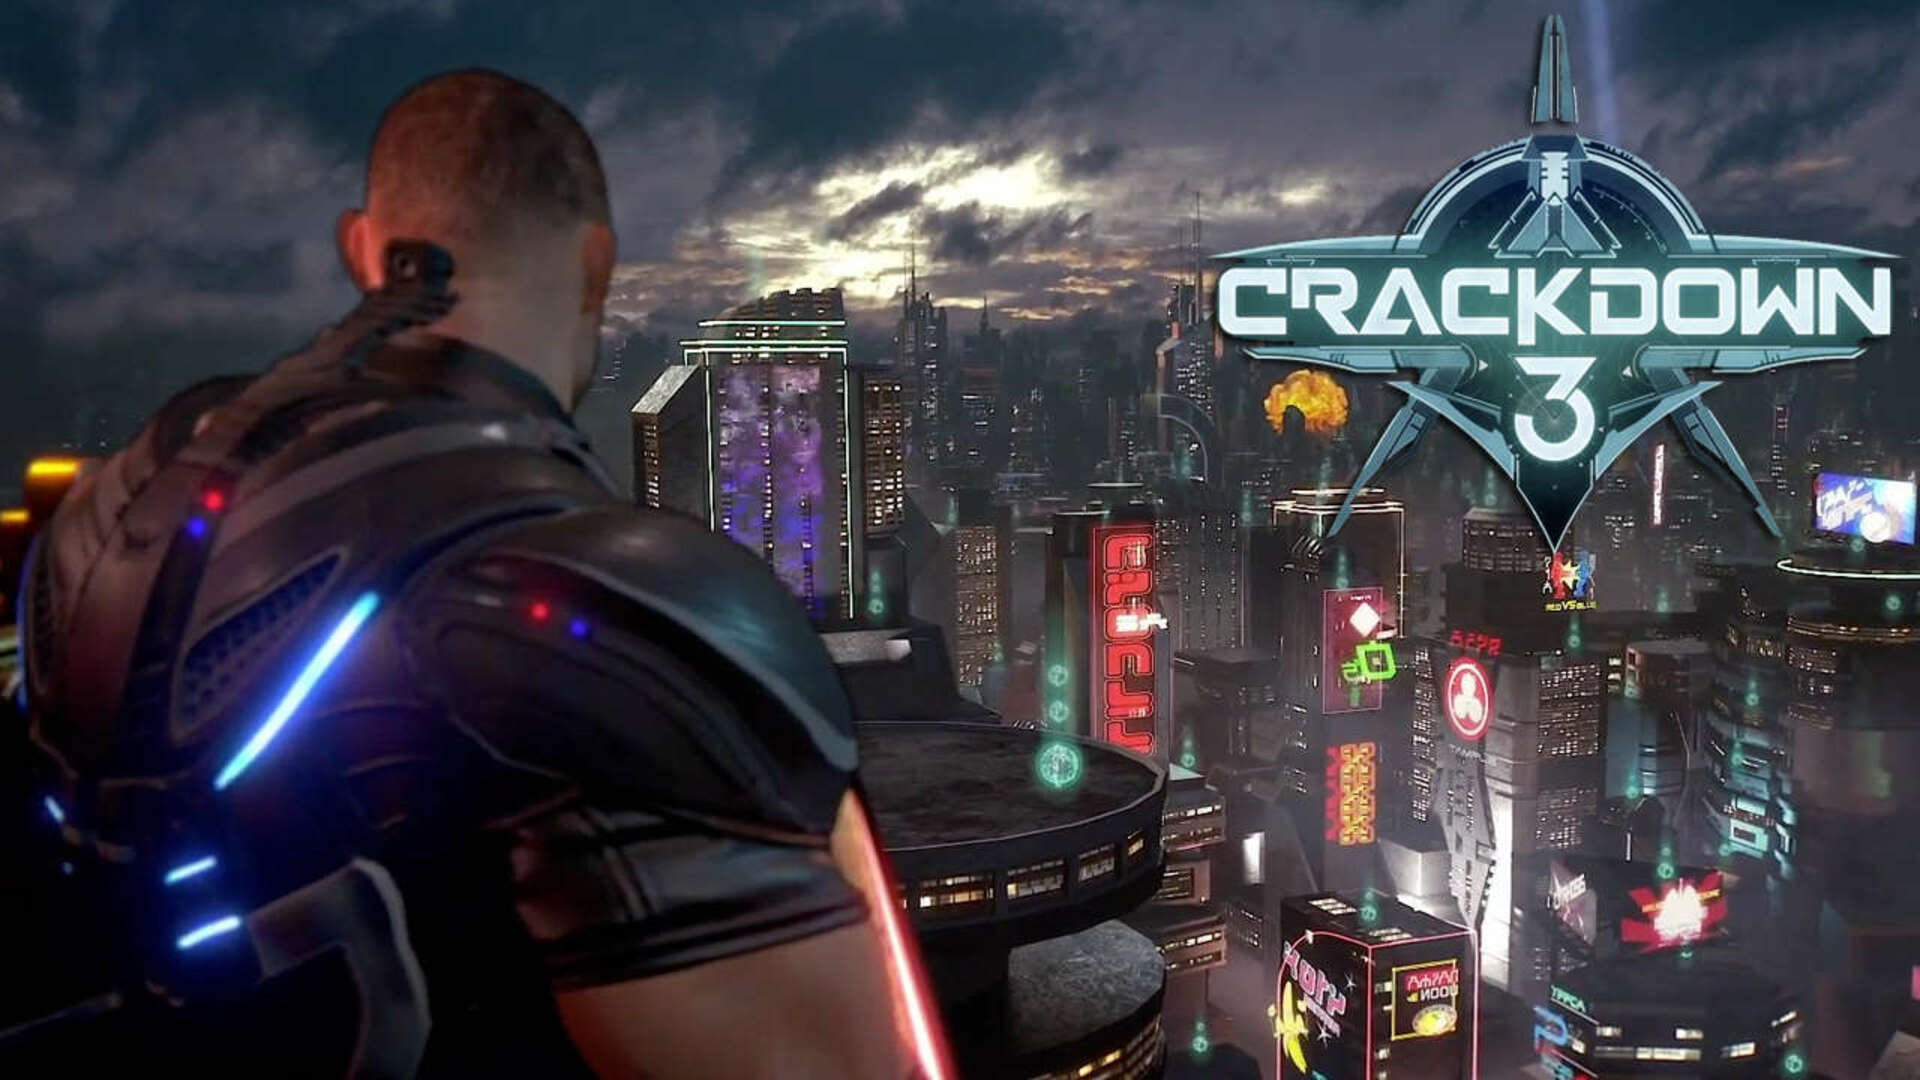 Crackdown 3 Review Roundup, Release Date, Trailer, Gameplay, Preview Impressions - Everything we Know